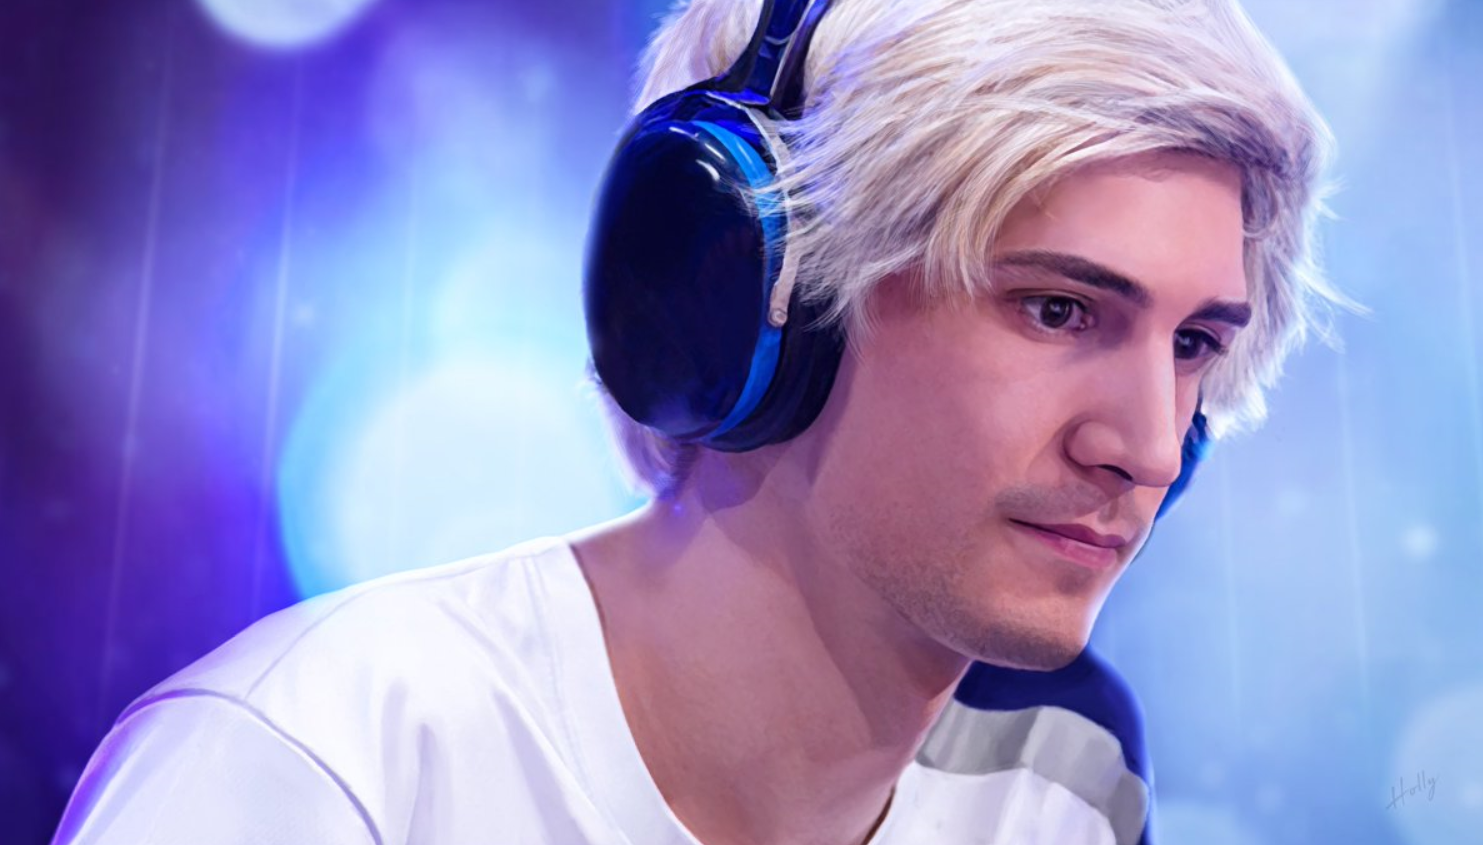 xQc Twitch's most watched streamer